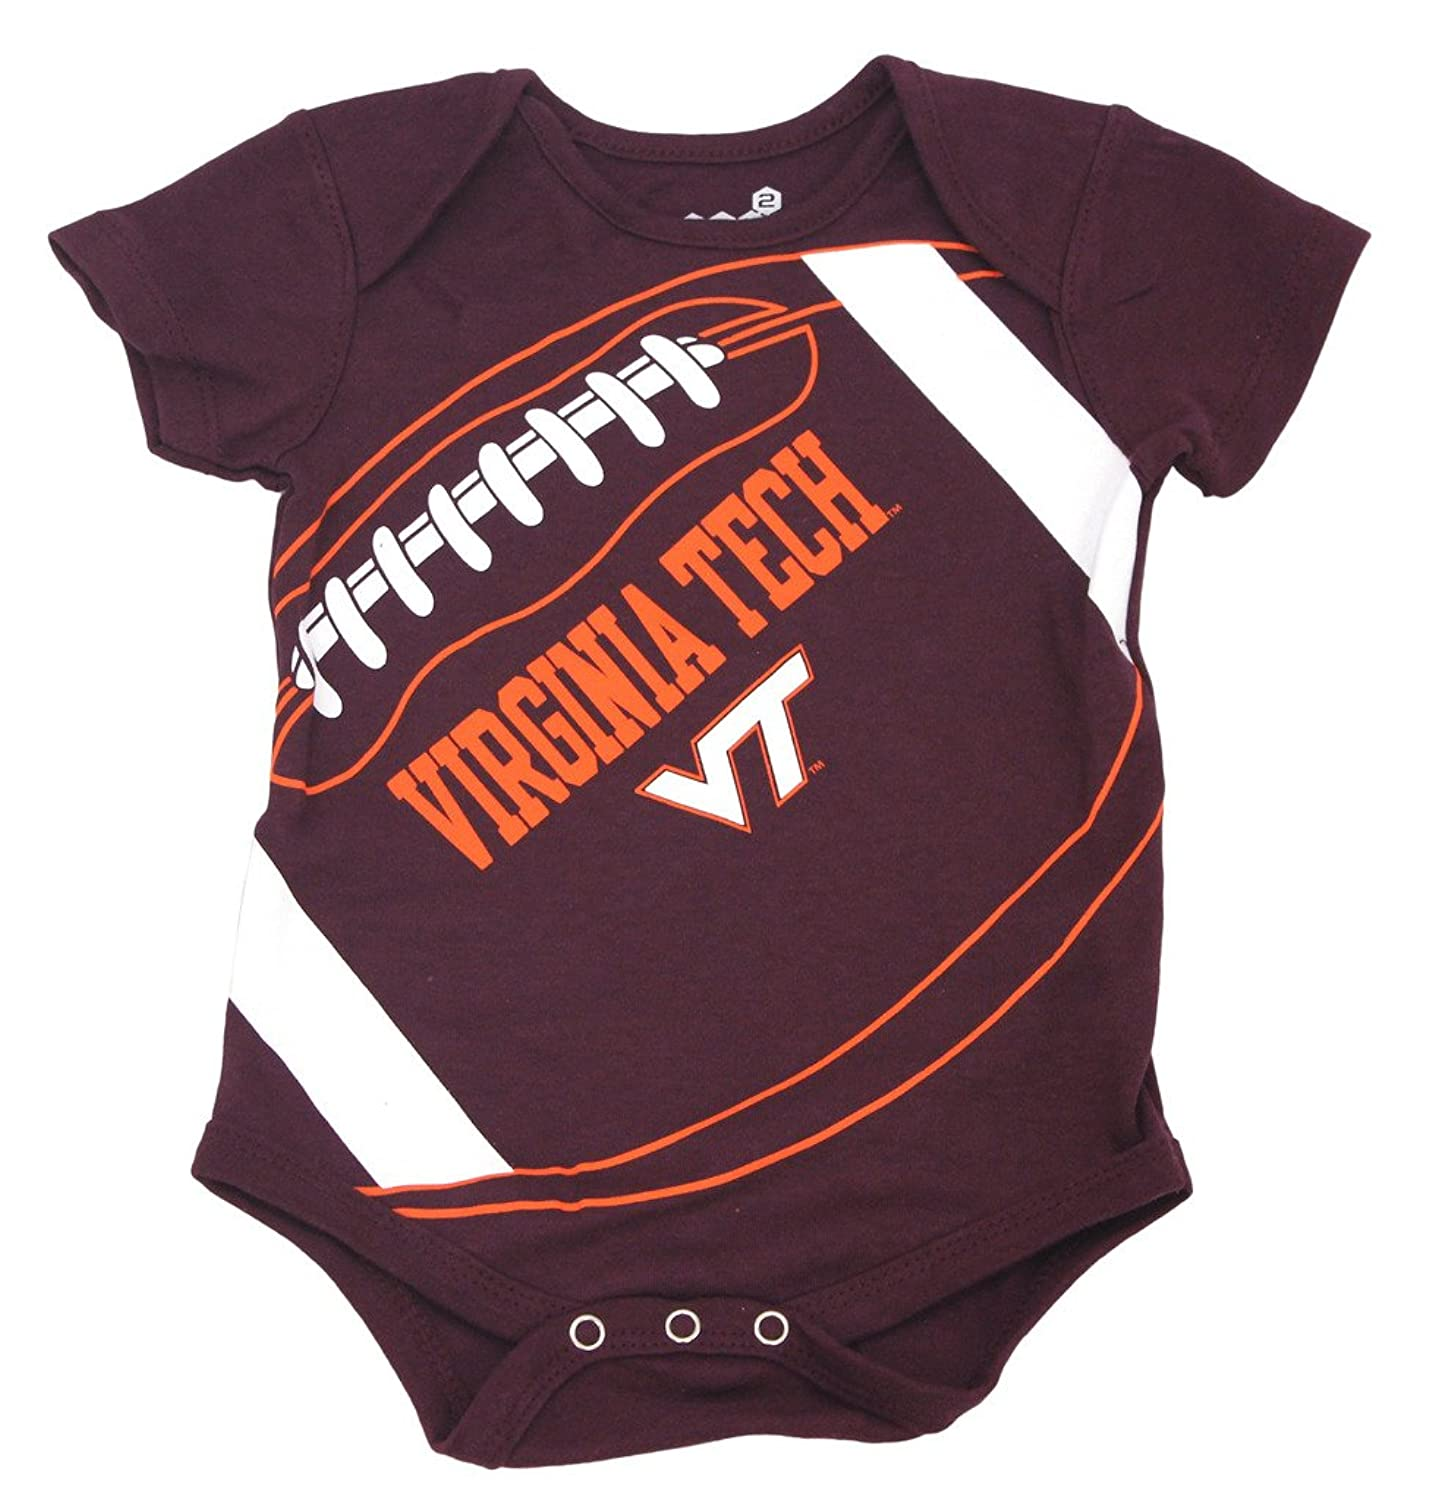 Amazon GEN2 Baby Toddler Virginia Tech Hokies Football Creeper